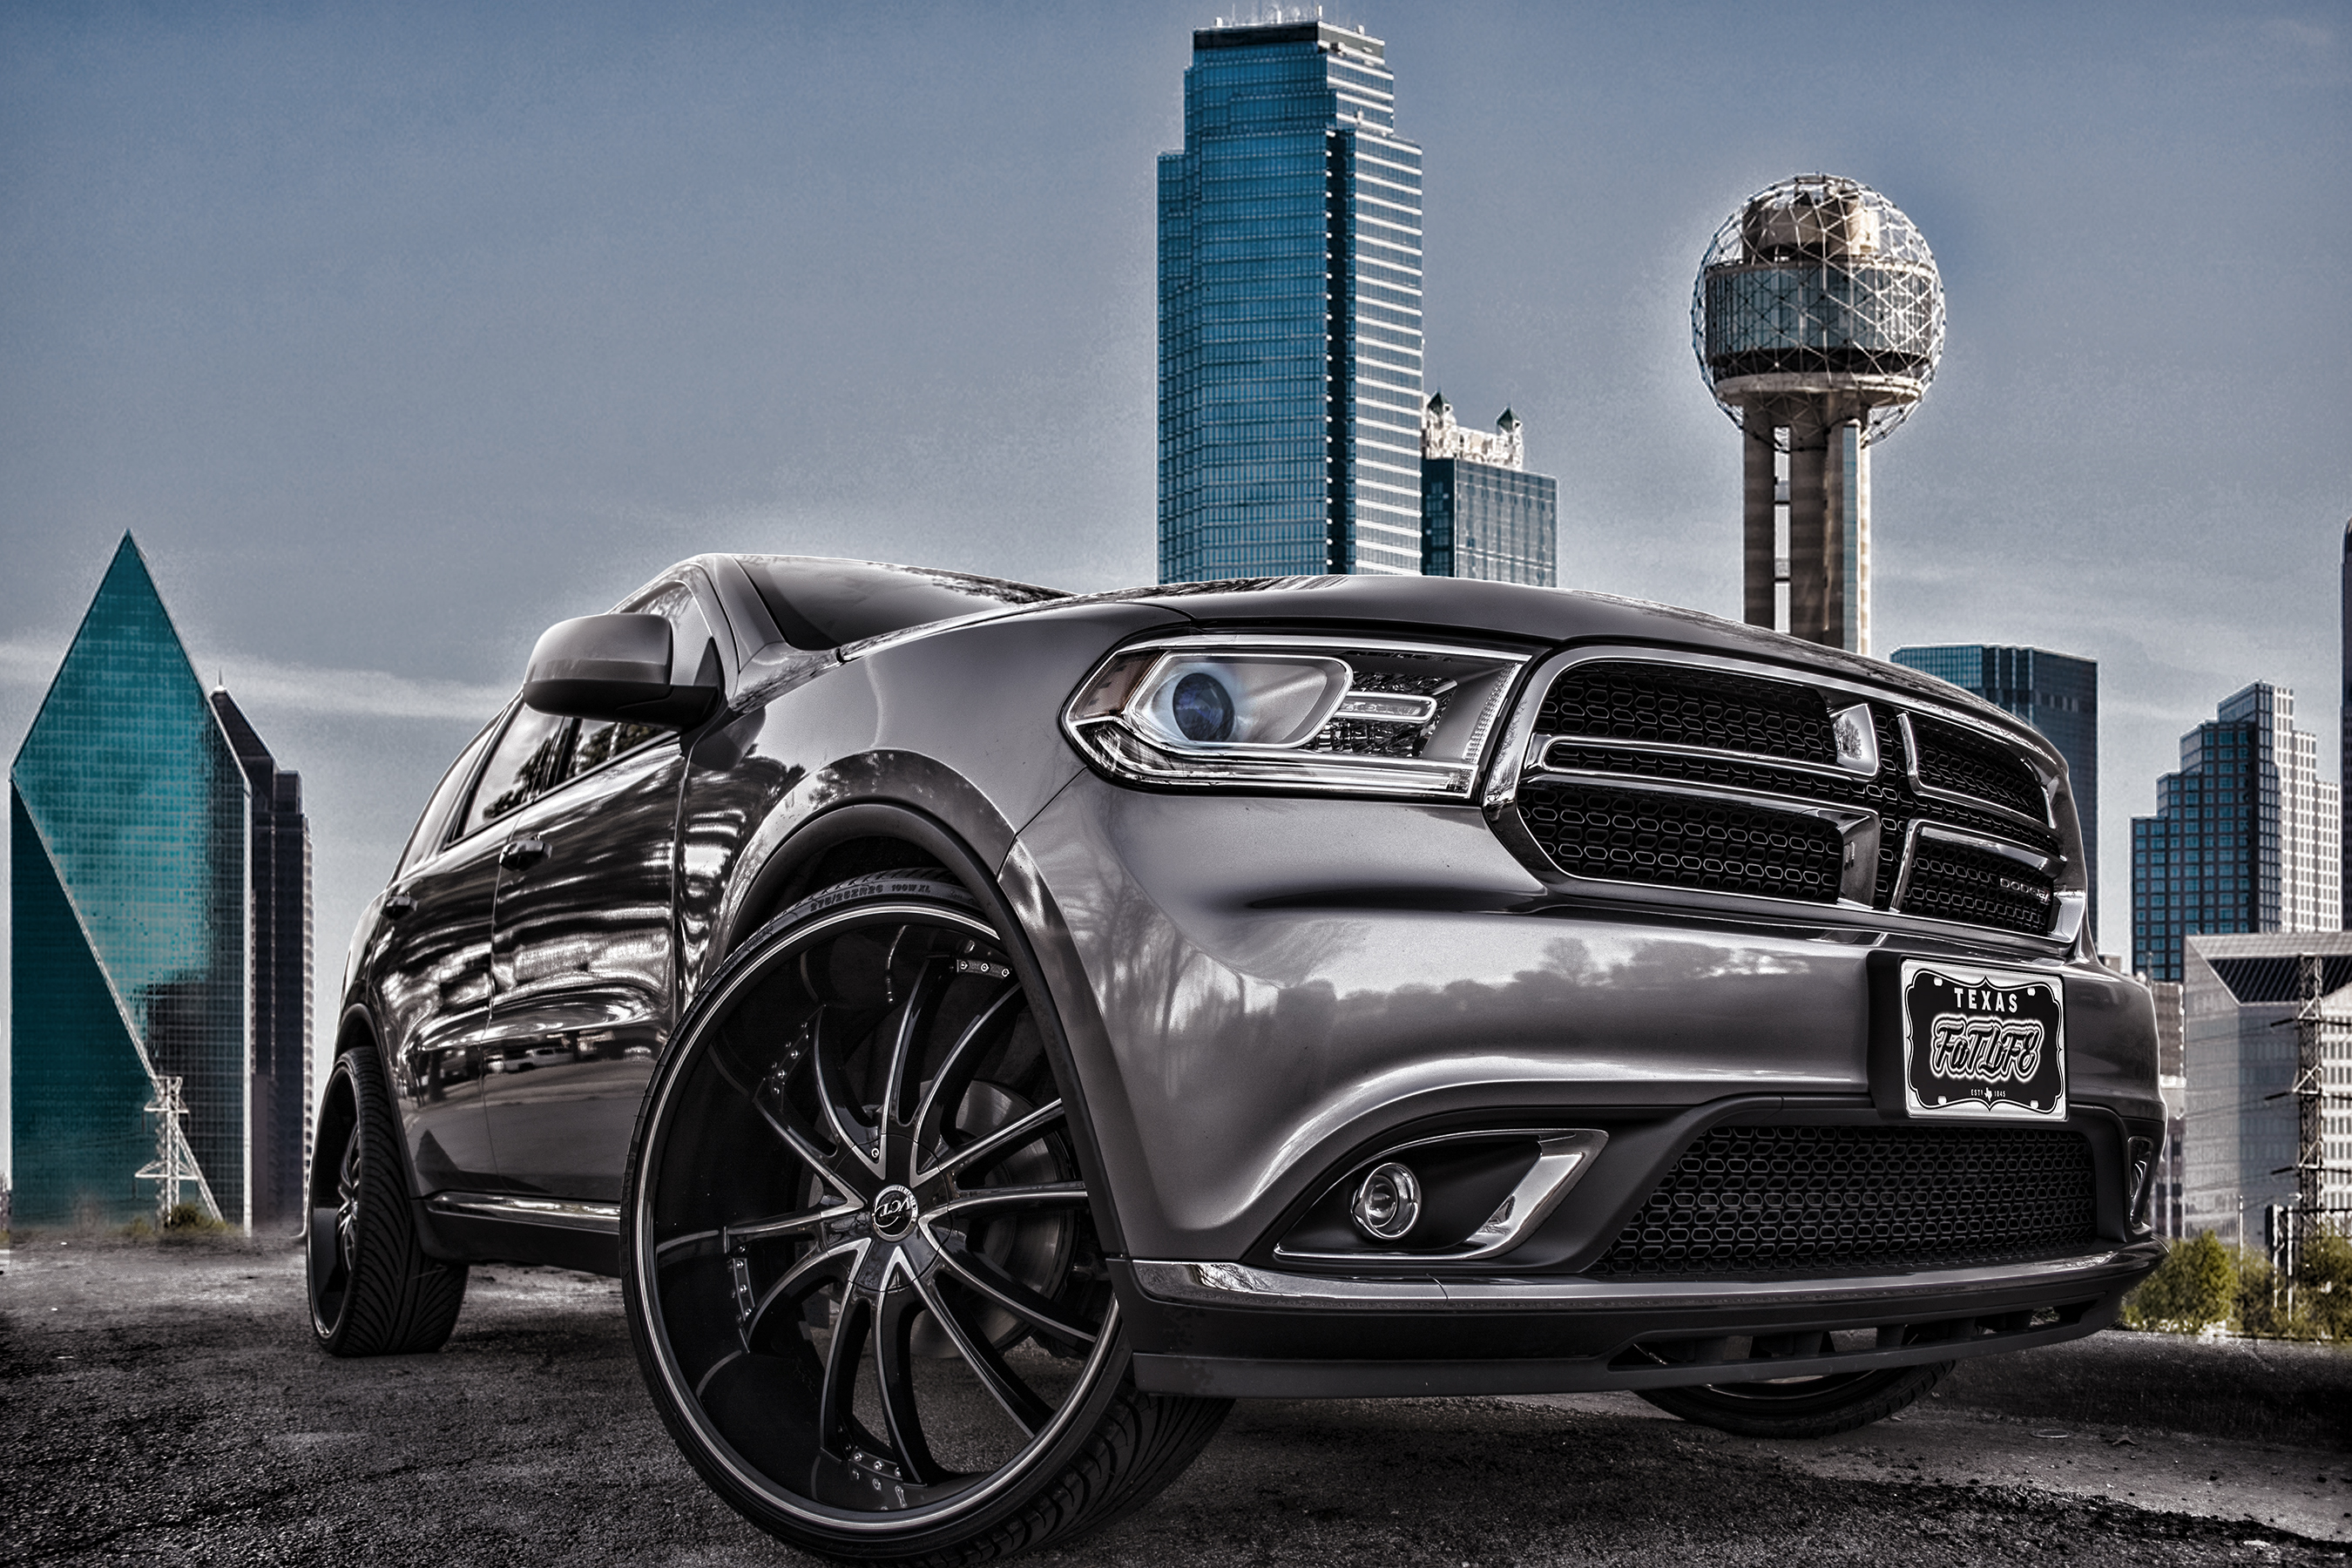 FaTLiFE 2014 Dodge Durango